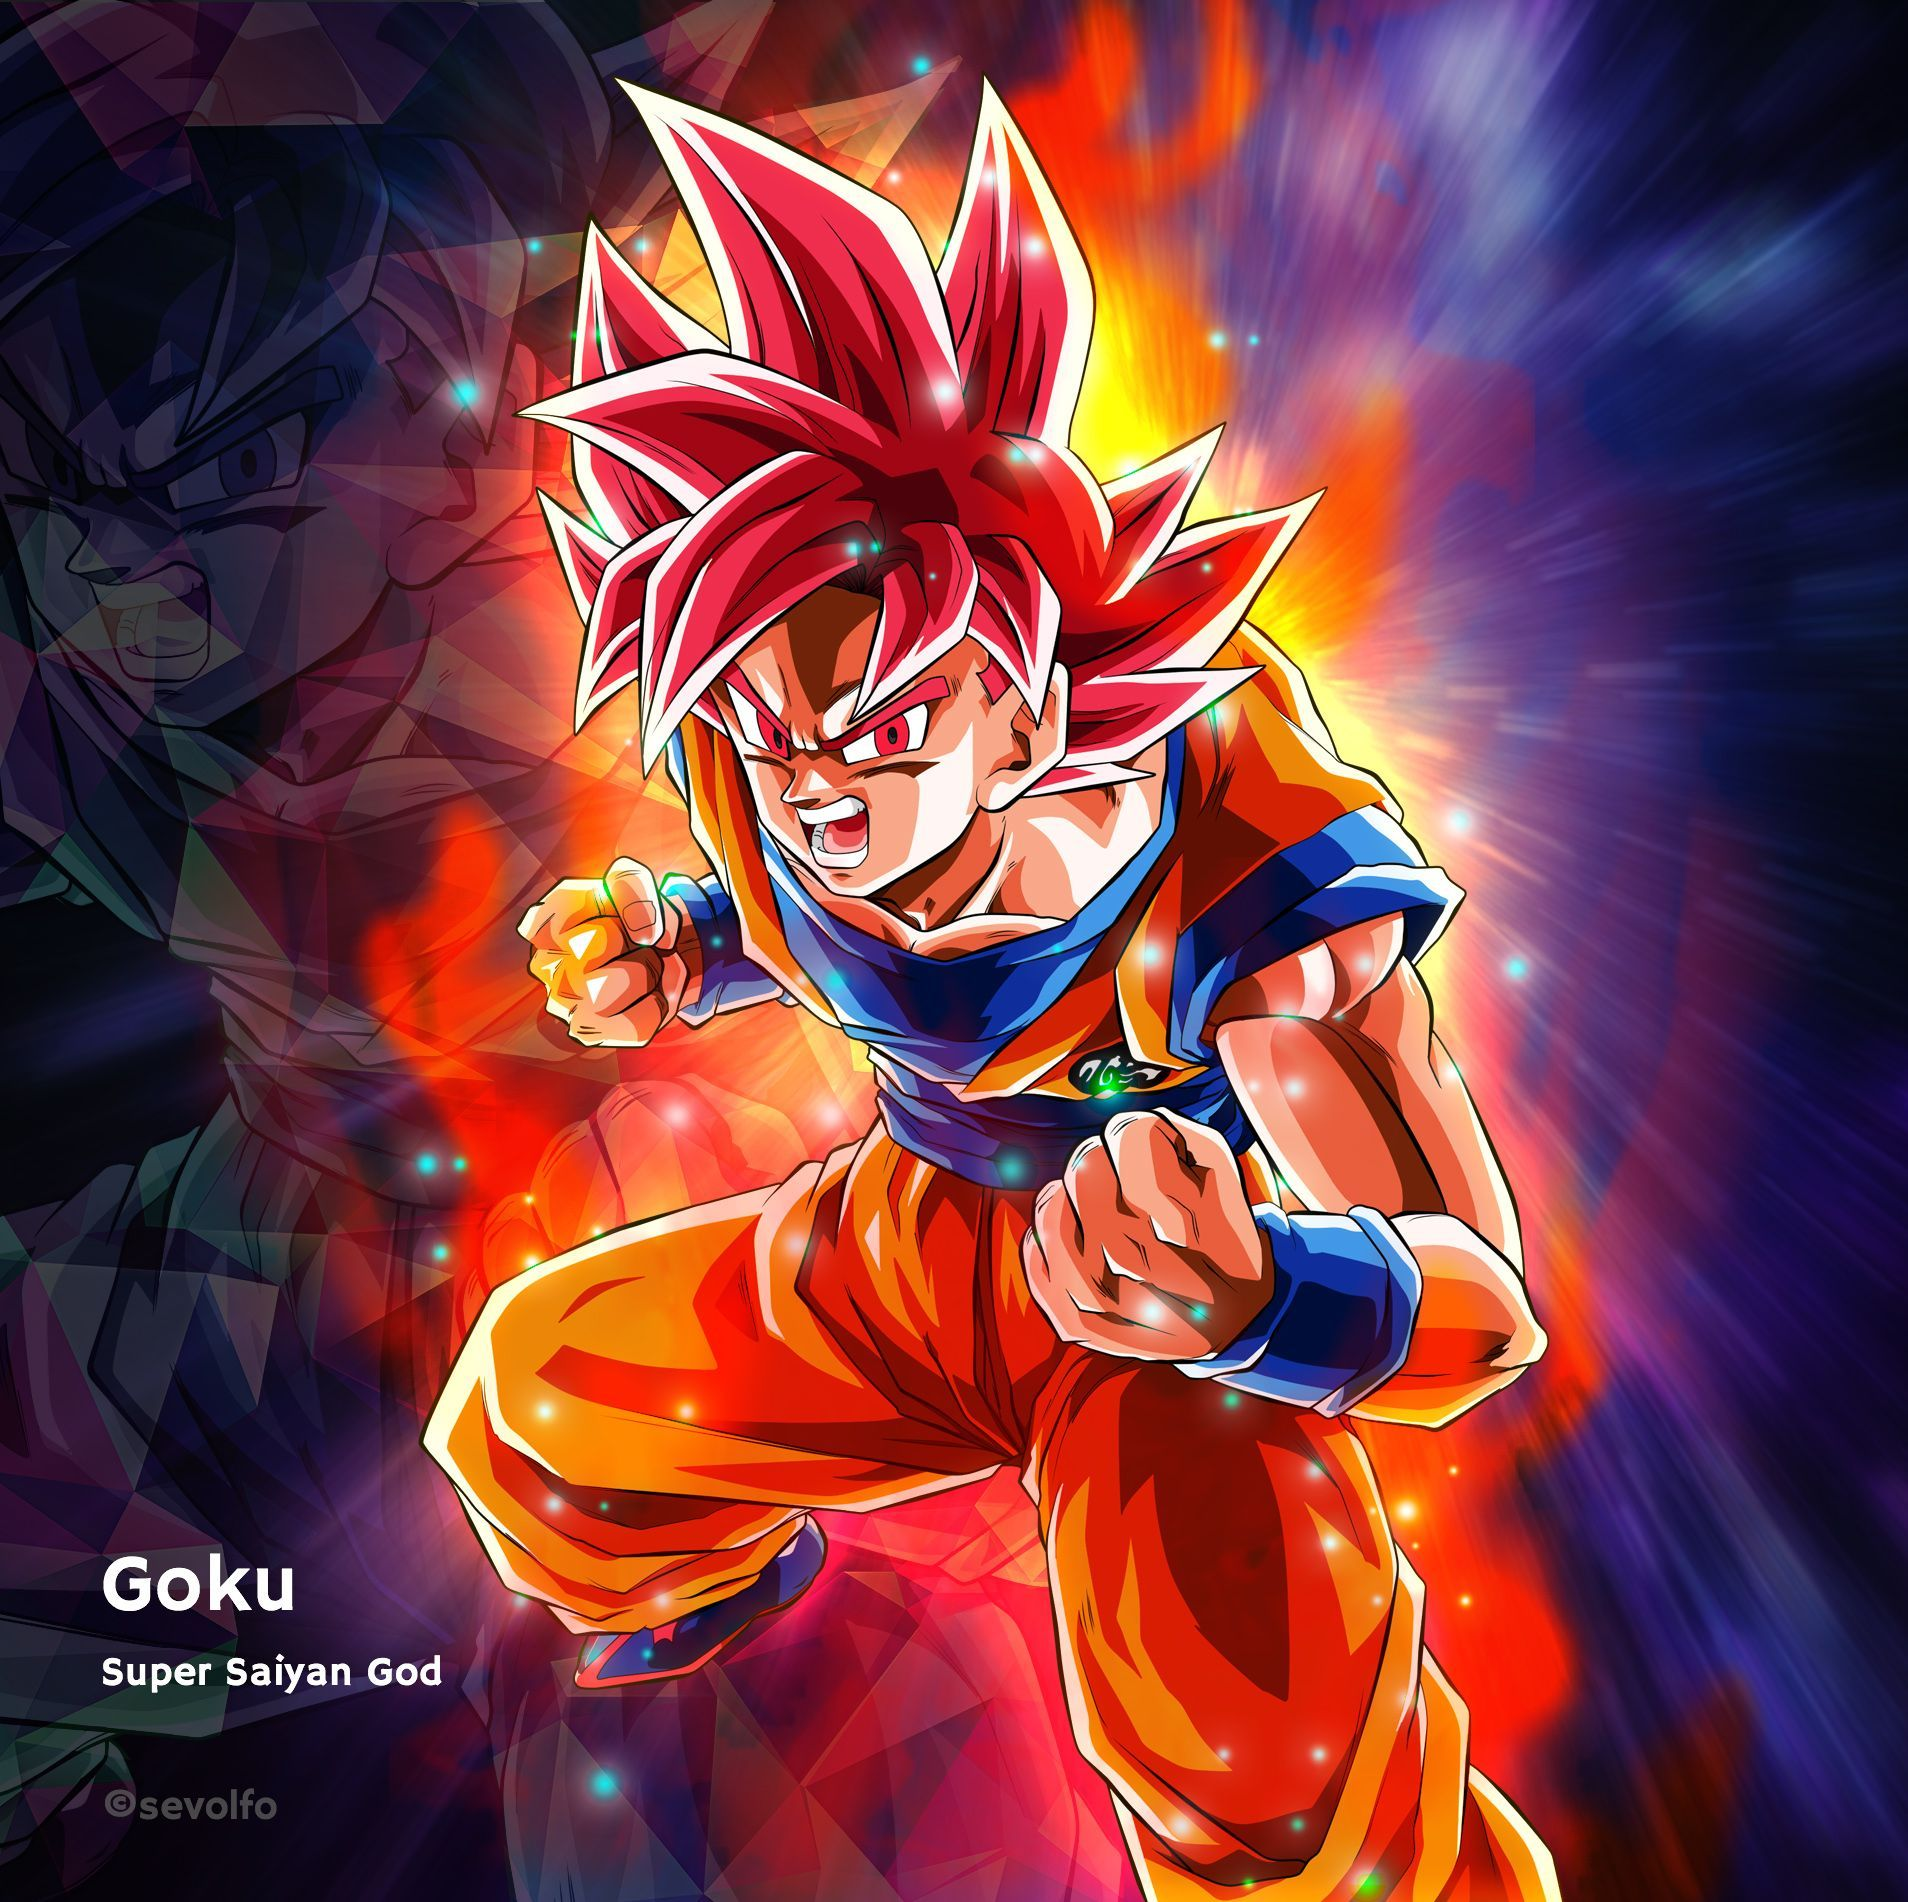 Wallpaper Dragon Ball Z Goku Super Saiyan Blue Goku Super Saiyan God Wallpaper Hd 1920x1080 Goku 5k In 2020 Dragon Ball Dragon Ball Wallpapers Dragon Ball Super Goku